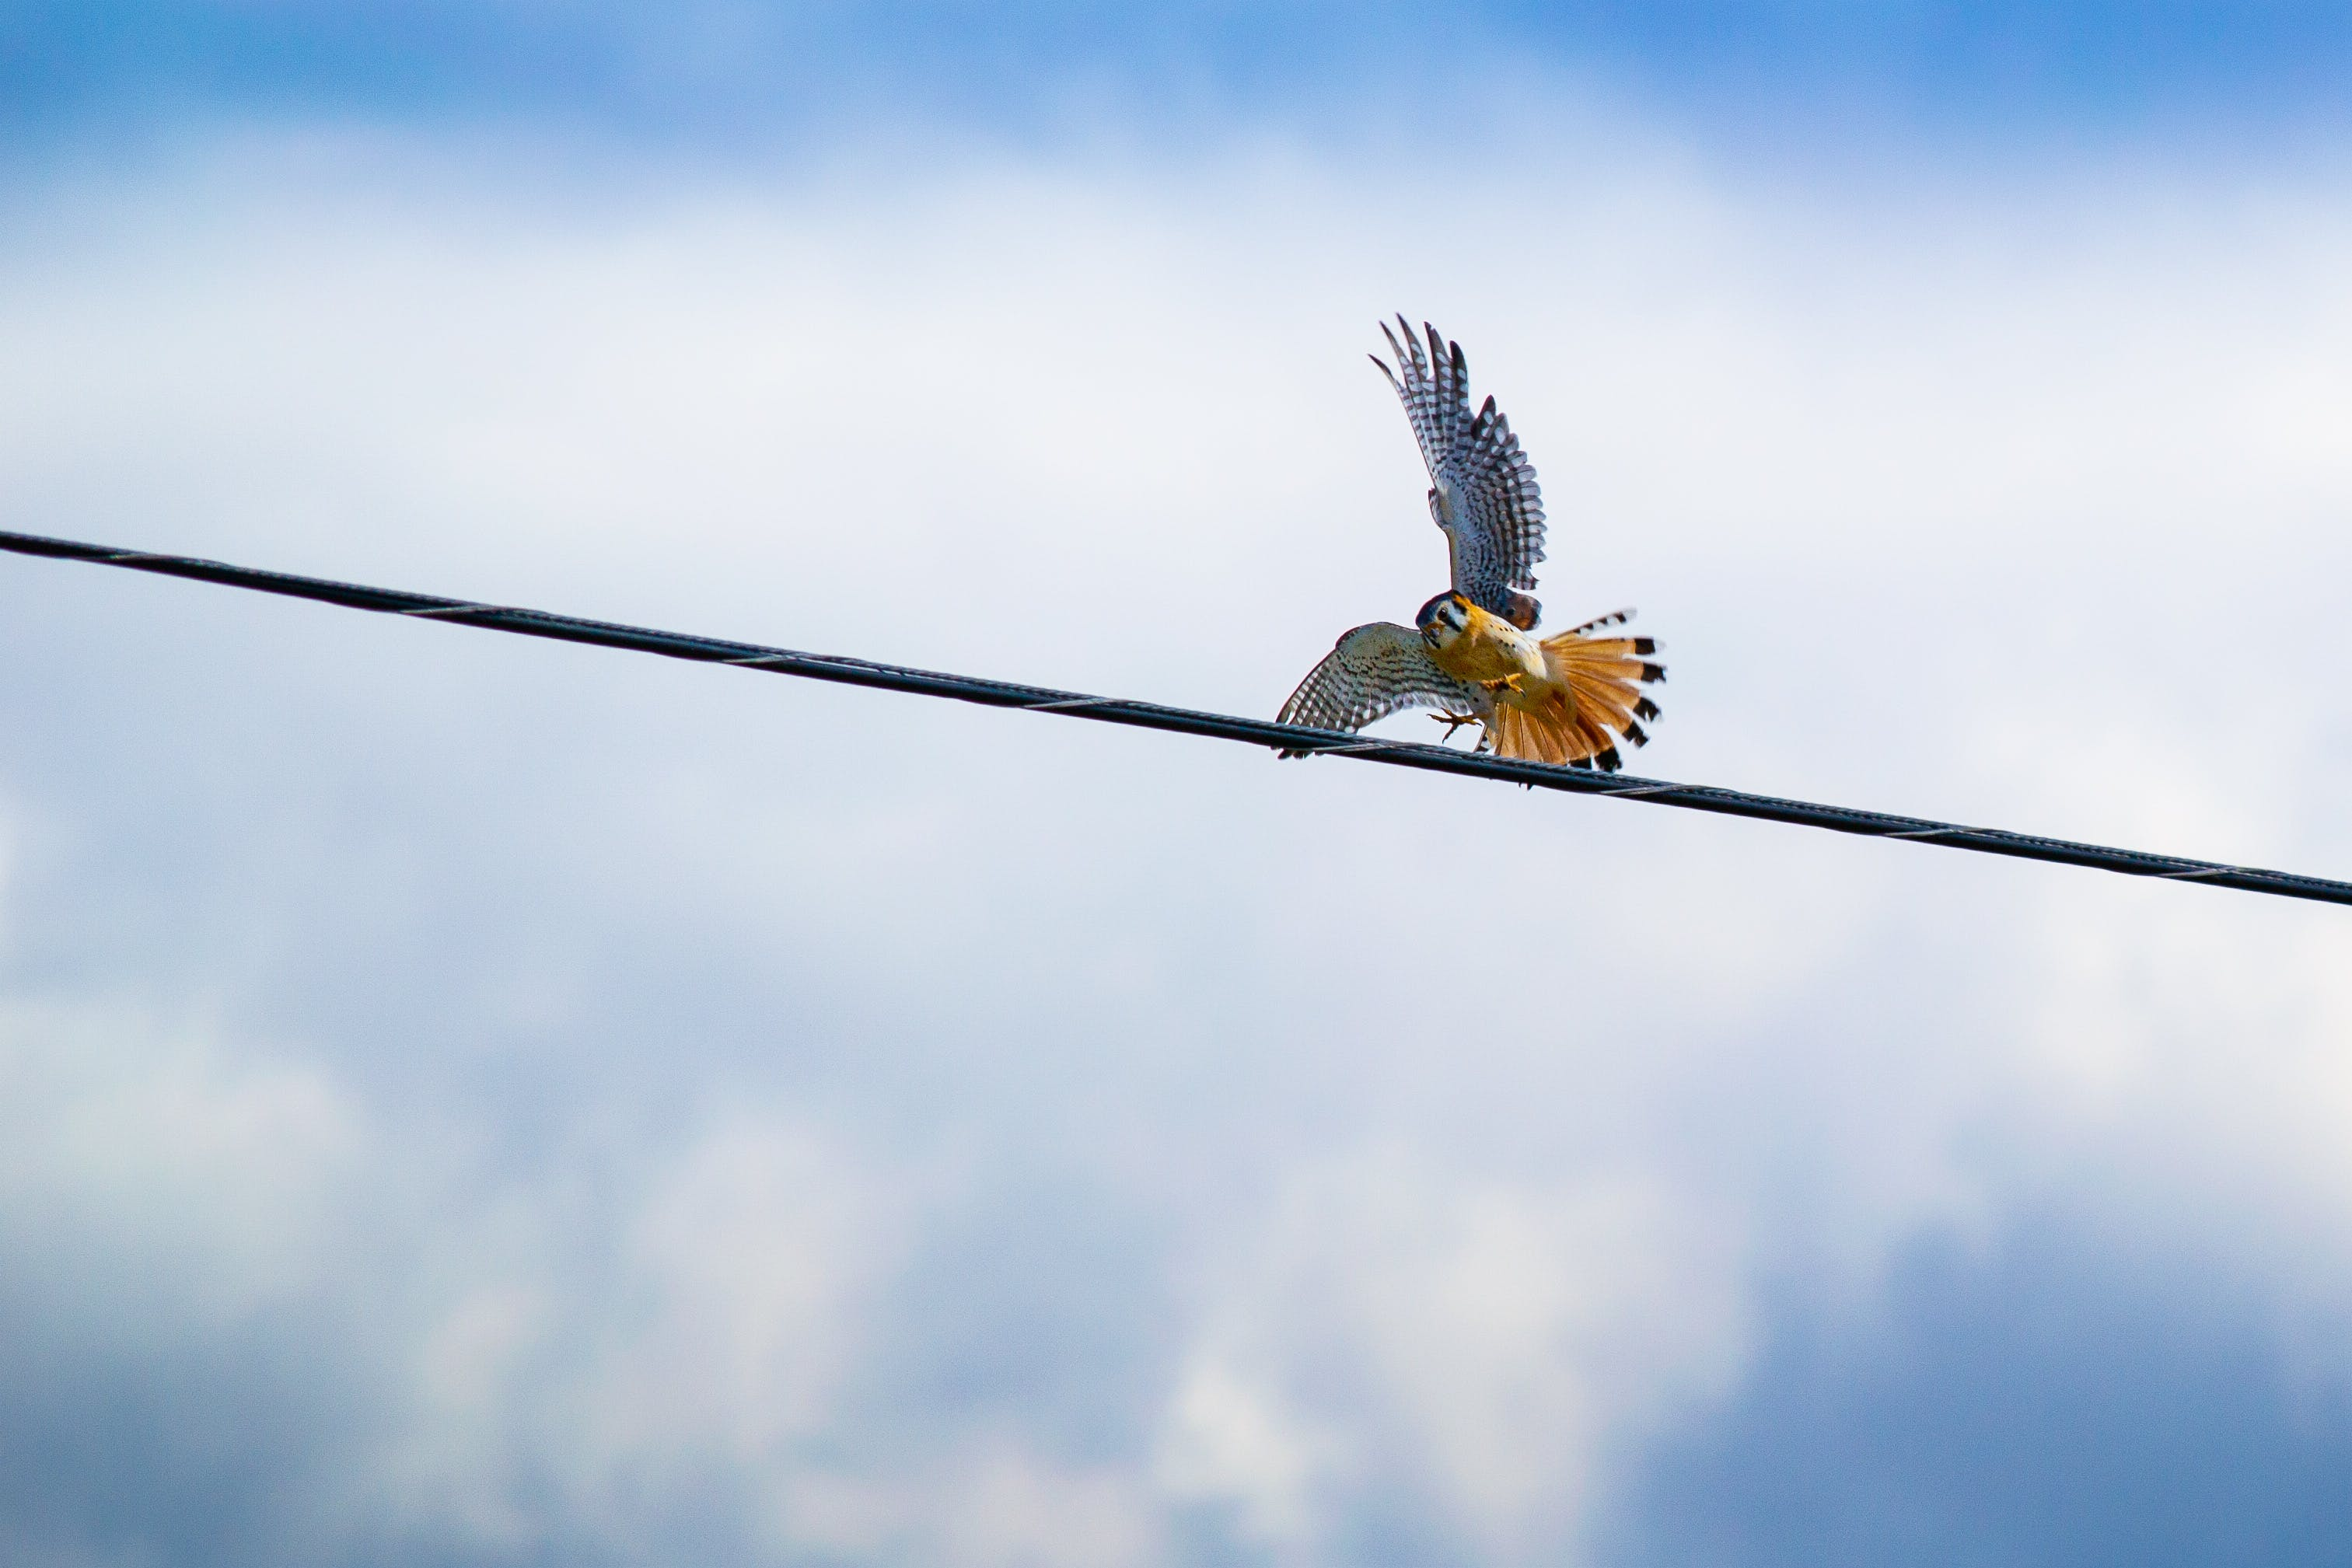 Red-tailed Hawk Flying over Black Cable